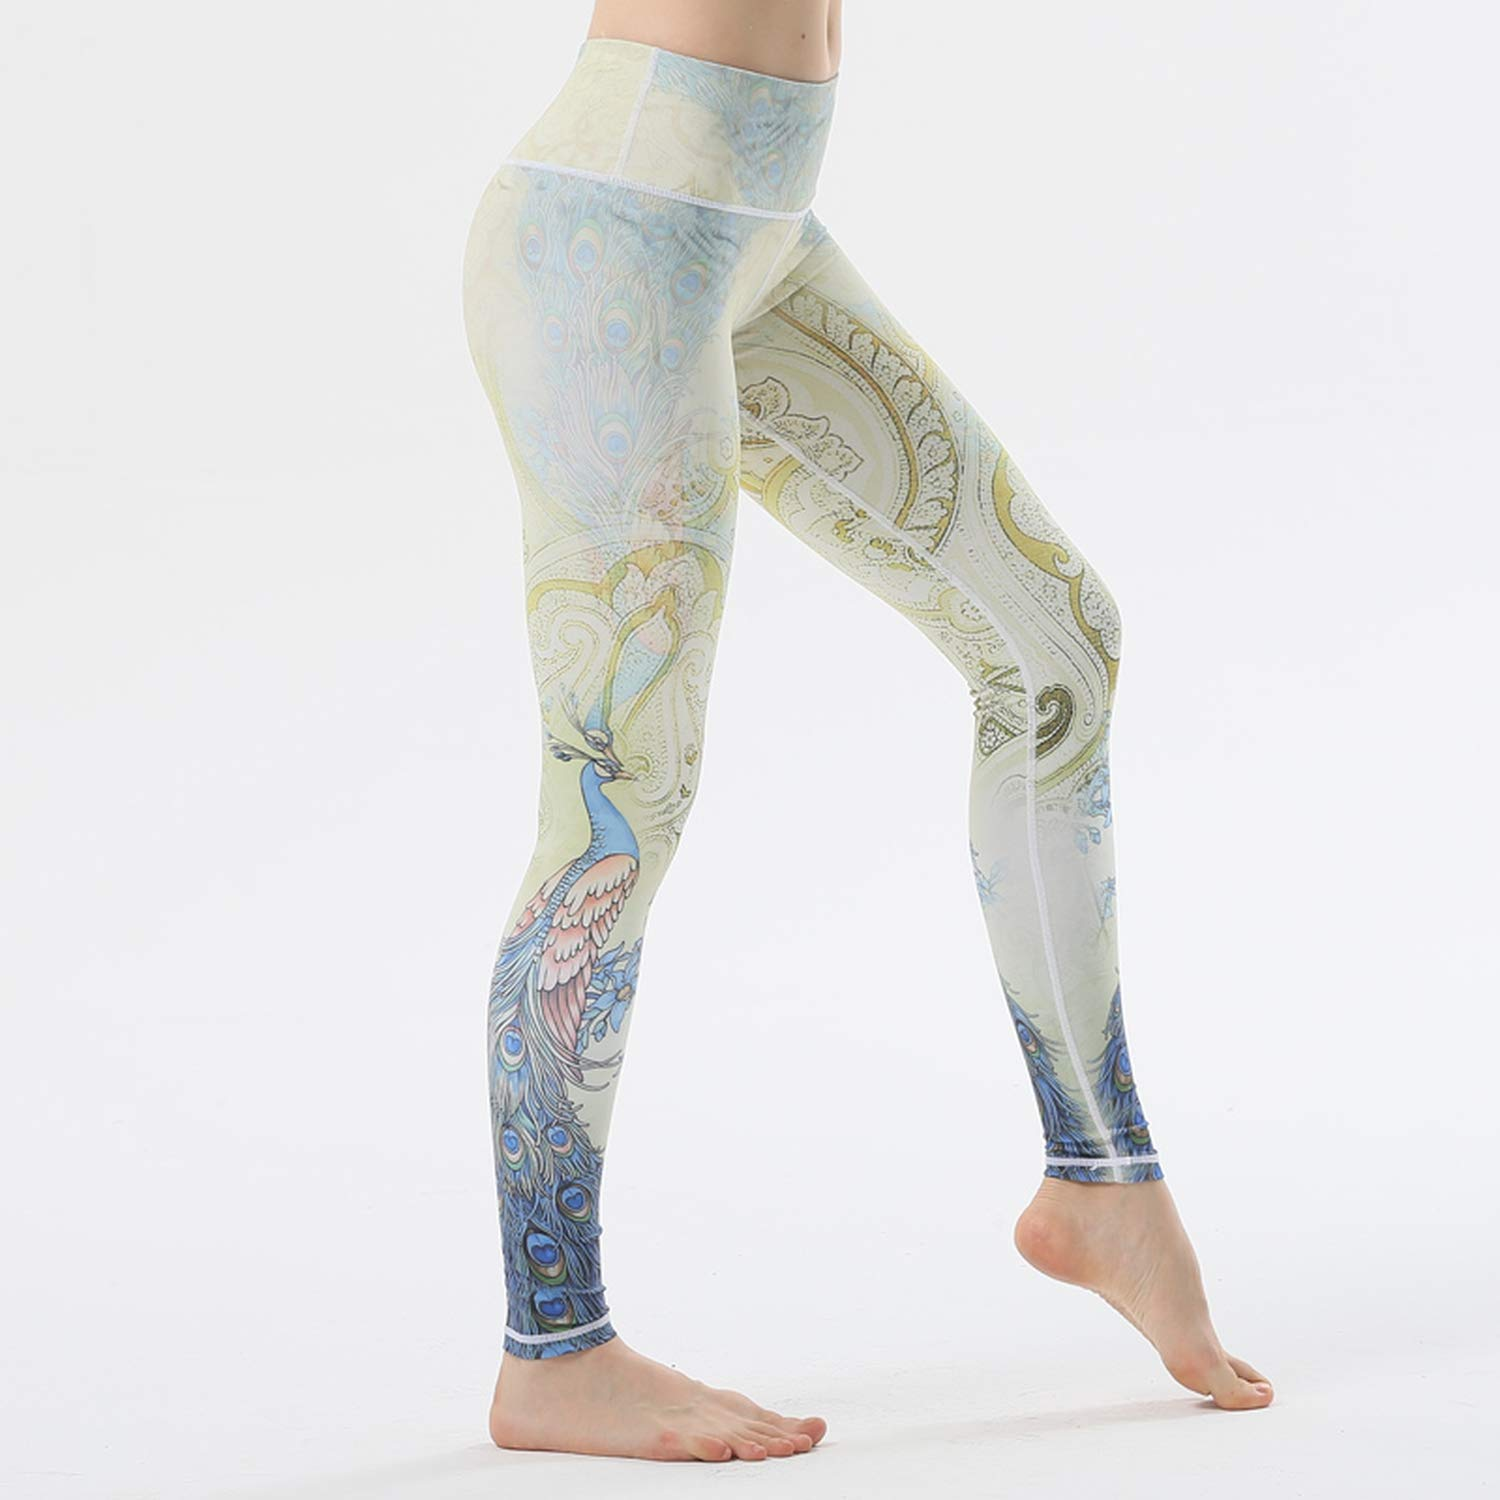 Amazon.com: Yoga Step on Foot Fit Sport Pants Elastic ...